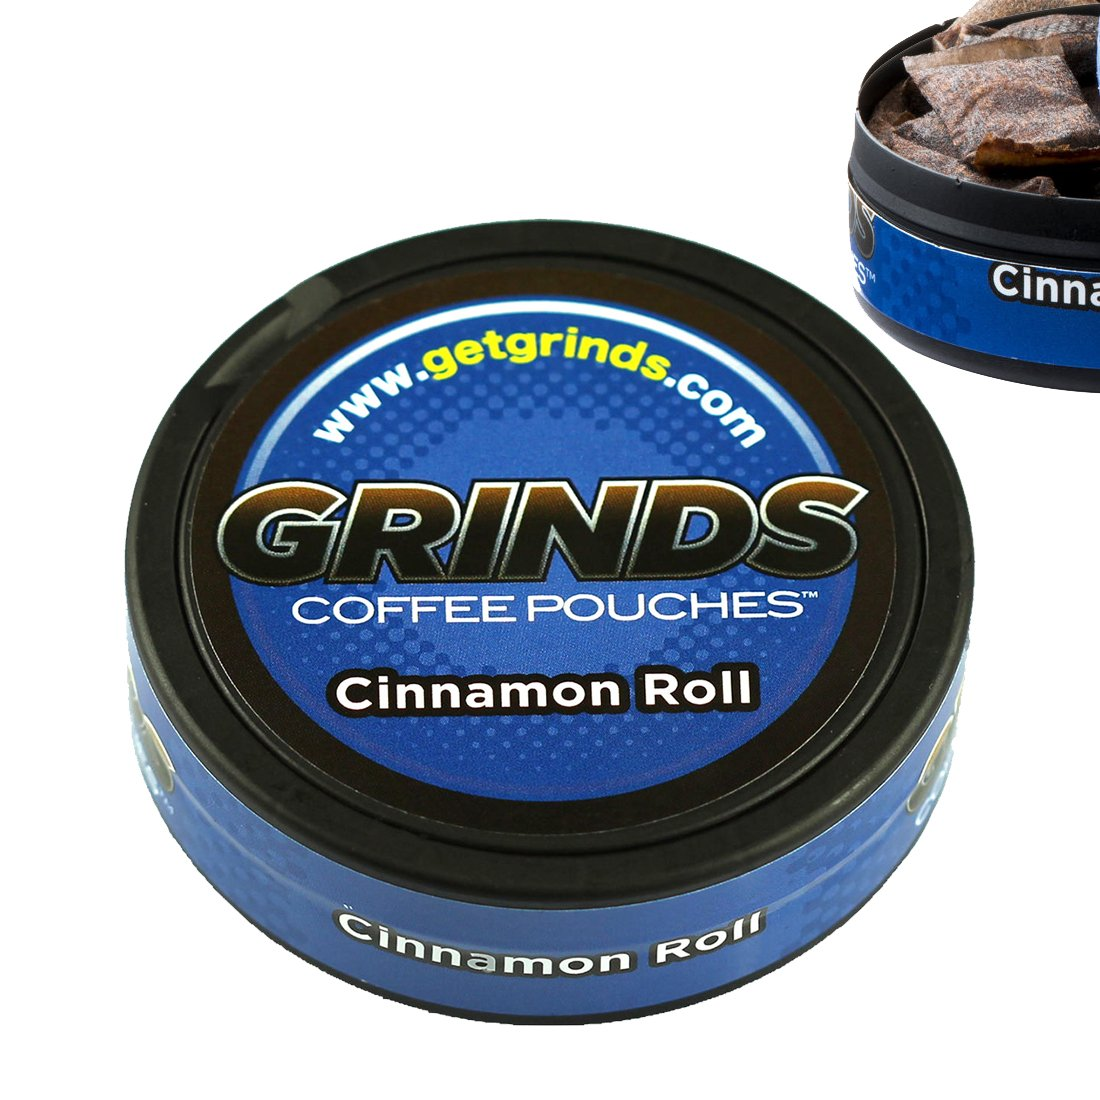 Grinds Coffee Pouches - 6 Cans - Cinnamon Roll - Tobacco Free Healthy Alternative